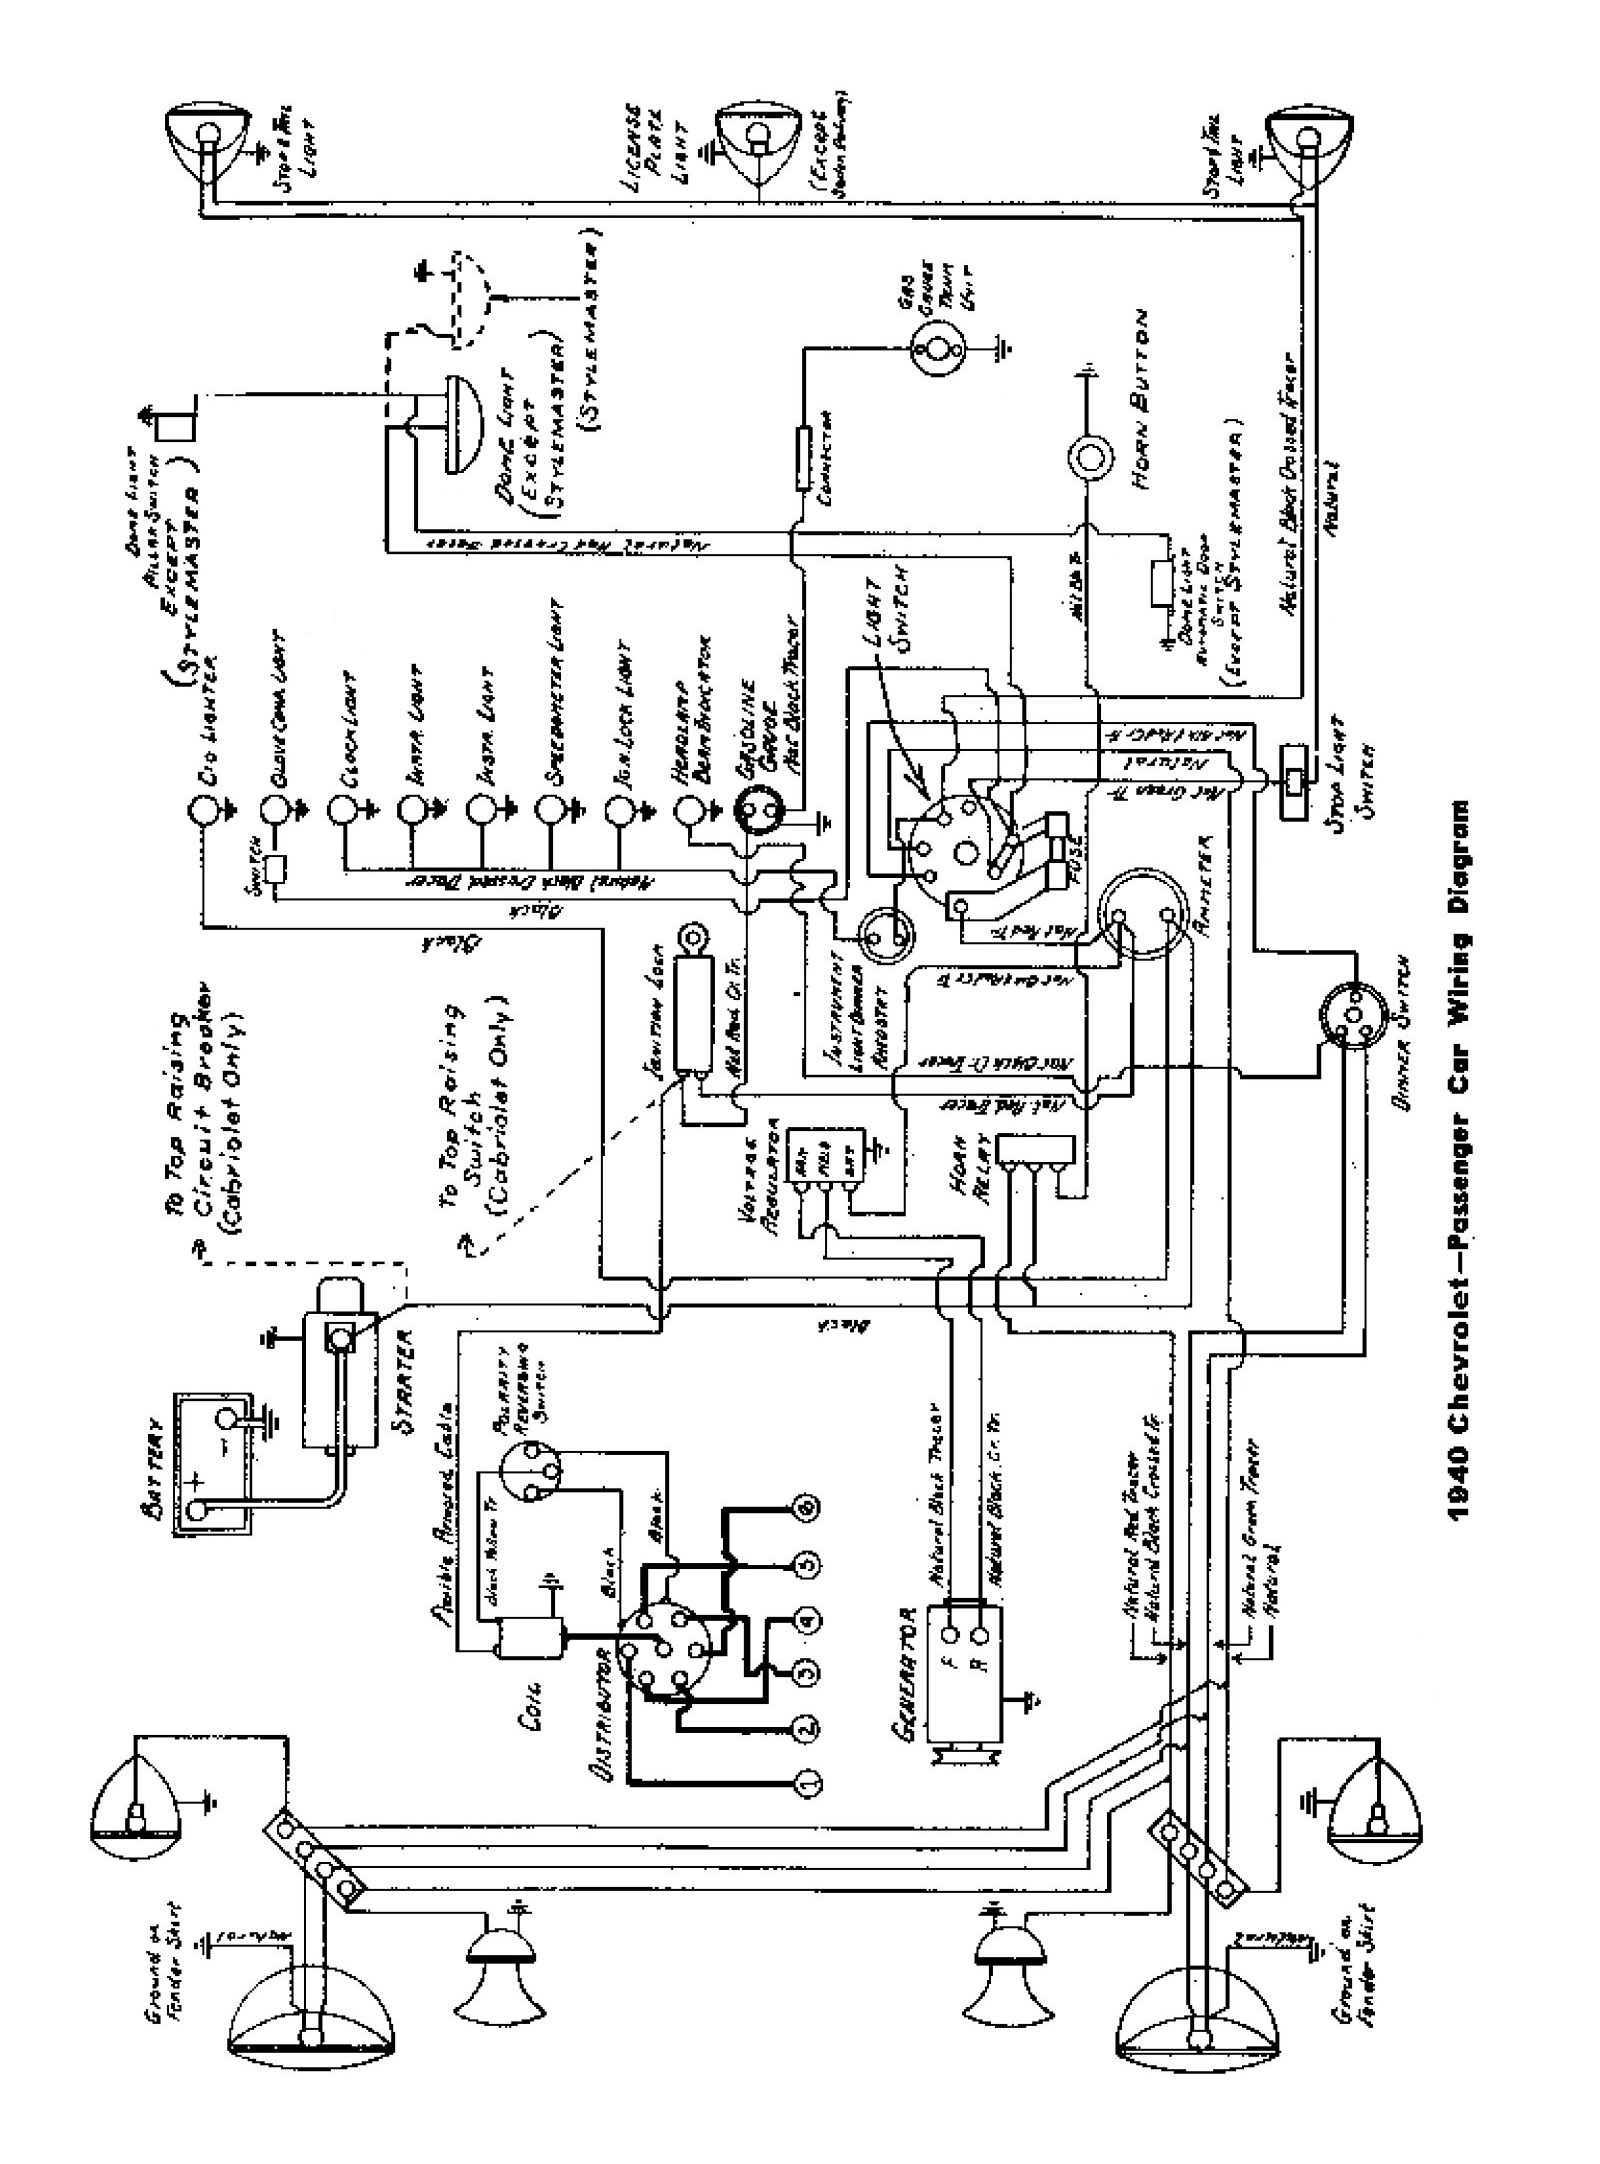 40car wiring diagram for 3600 ford tractor the wiring diagram 1979 ford escort wiring diagram at n-0.co